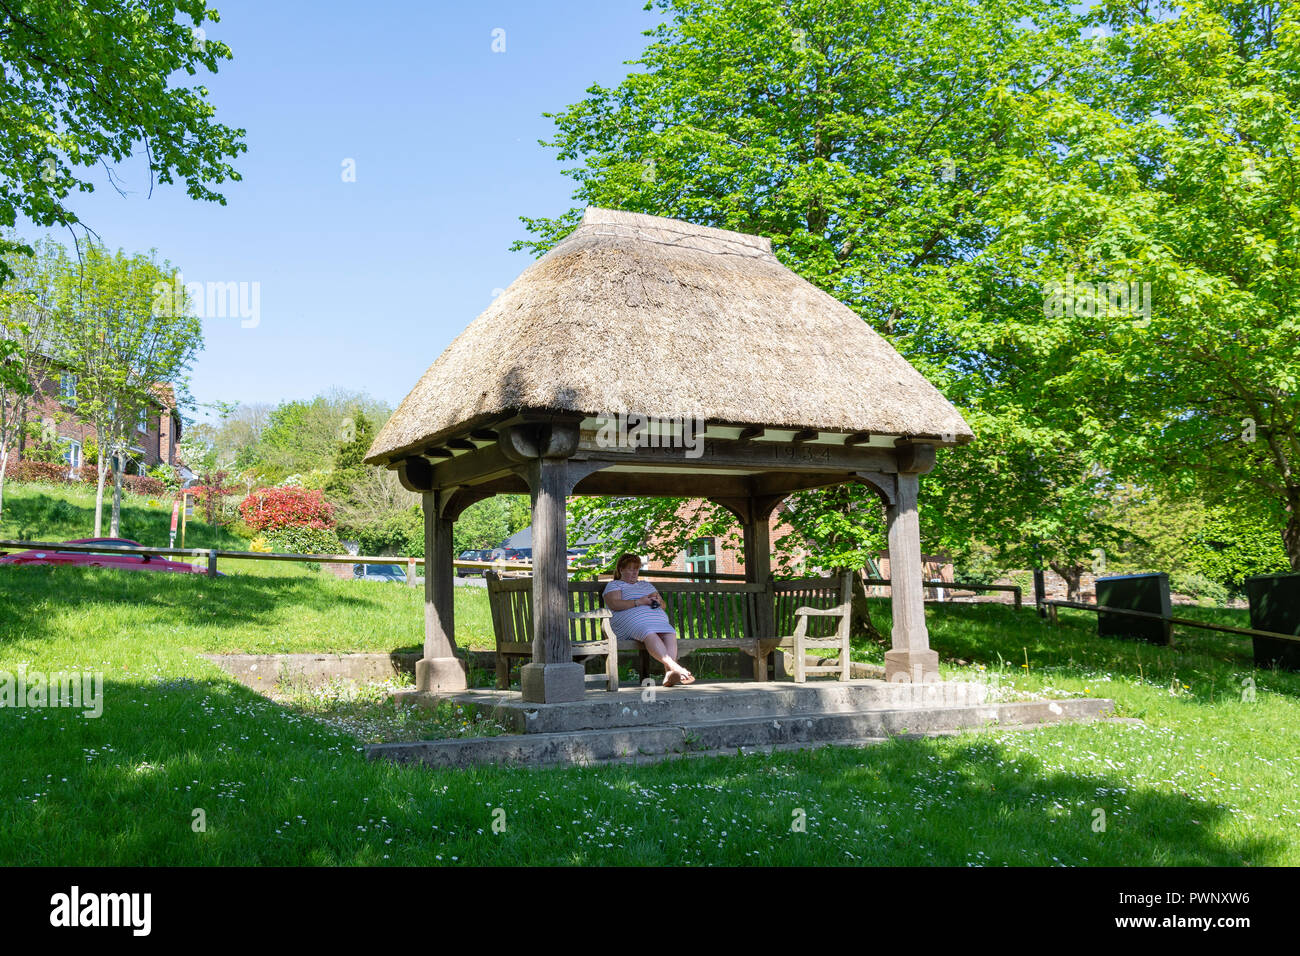 The Martyrs' Tree and Memorial Shelter on The Green, Tolpuddle, Dorset, England, United Kingdom - Stock Image